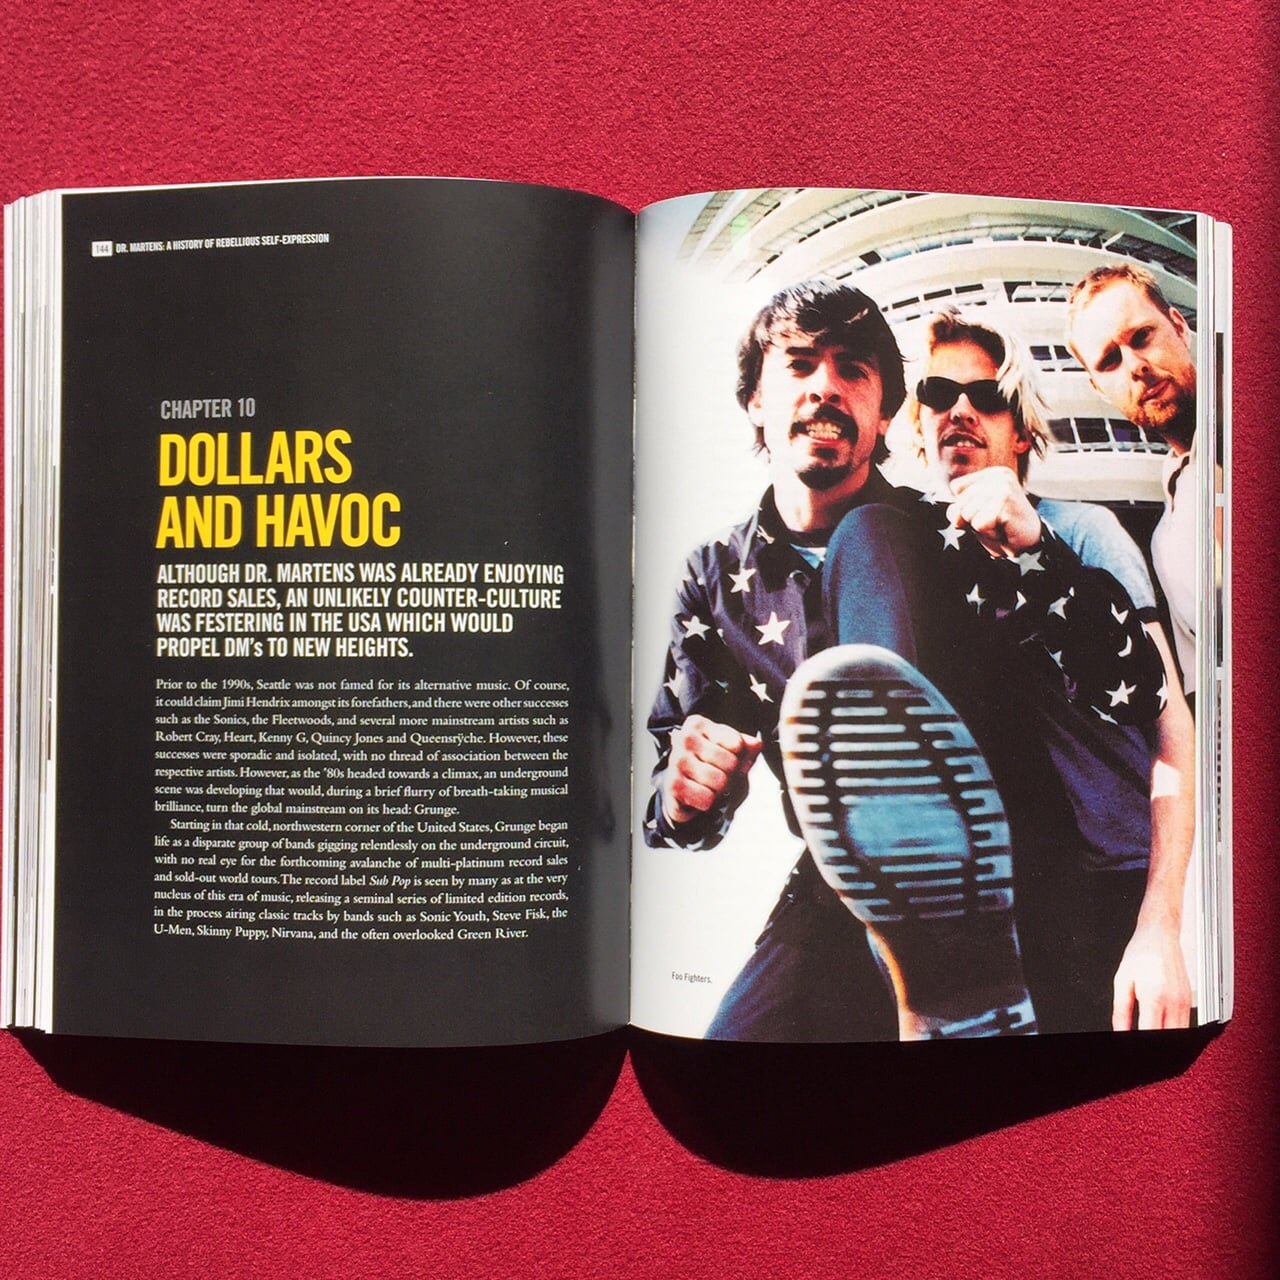 My pic of the Foofighters in the new Dr Martens book     History of rebellious self expression http://blog.drmartens.com/history-of-rebellious-self-expression-book-available-now/